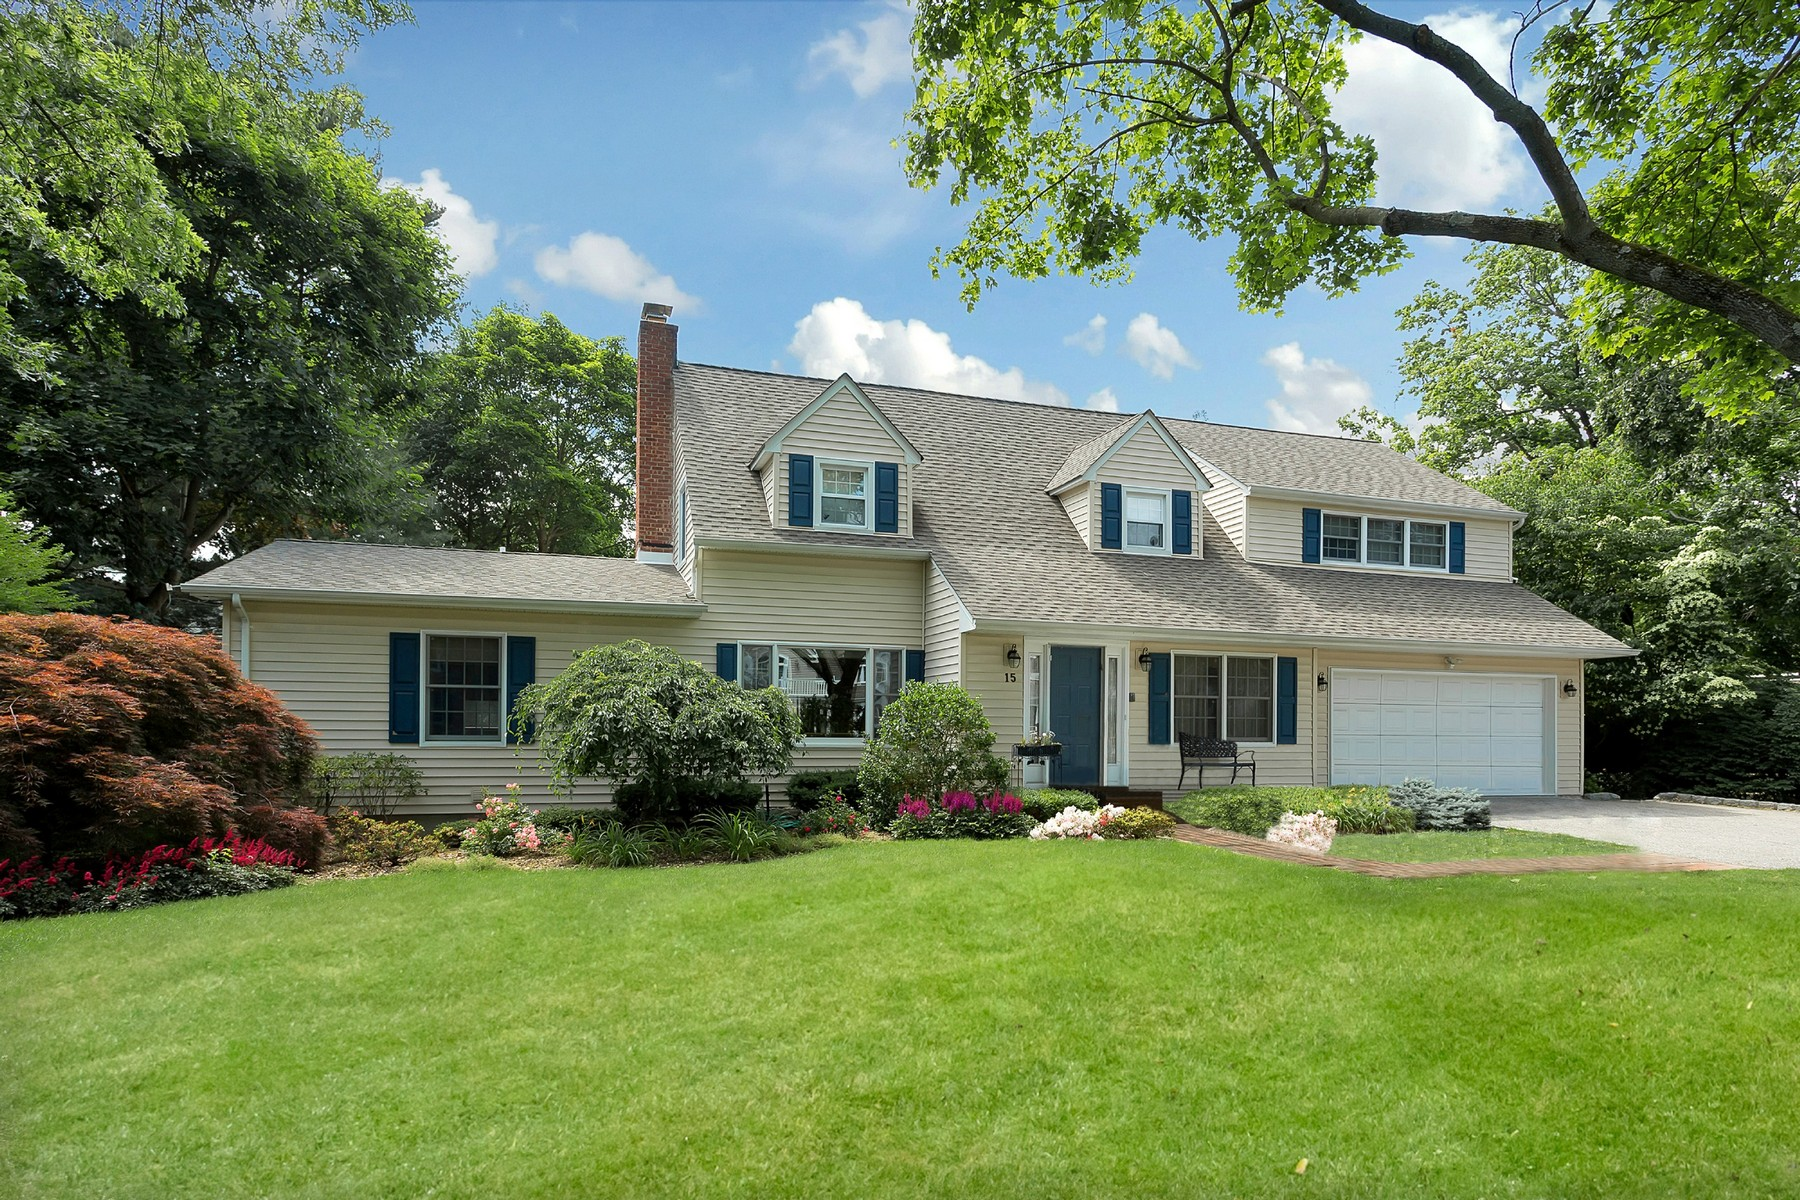 Single Family Home for Sale at Colonial 15 Holly Ln East Hills, New York, 11577 United States